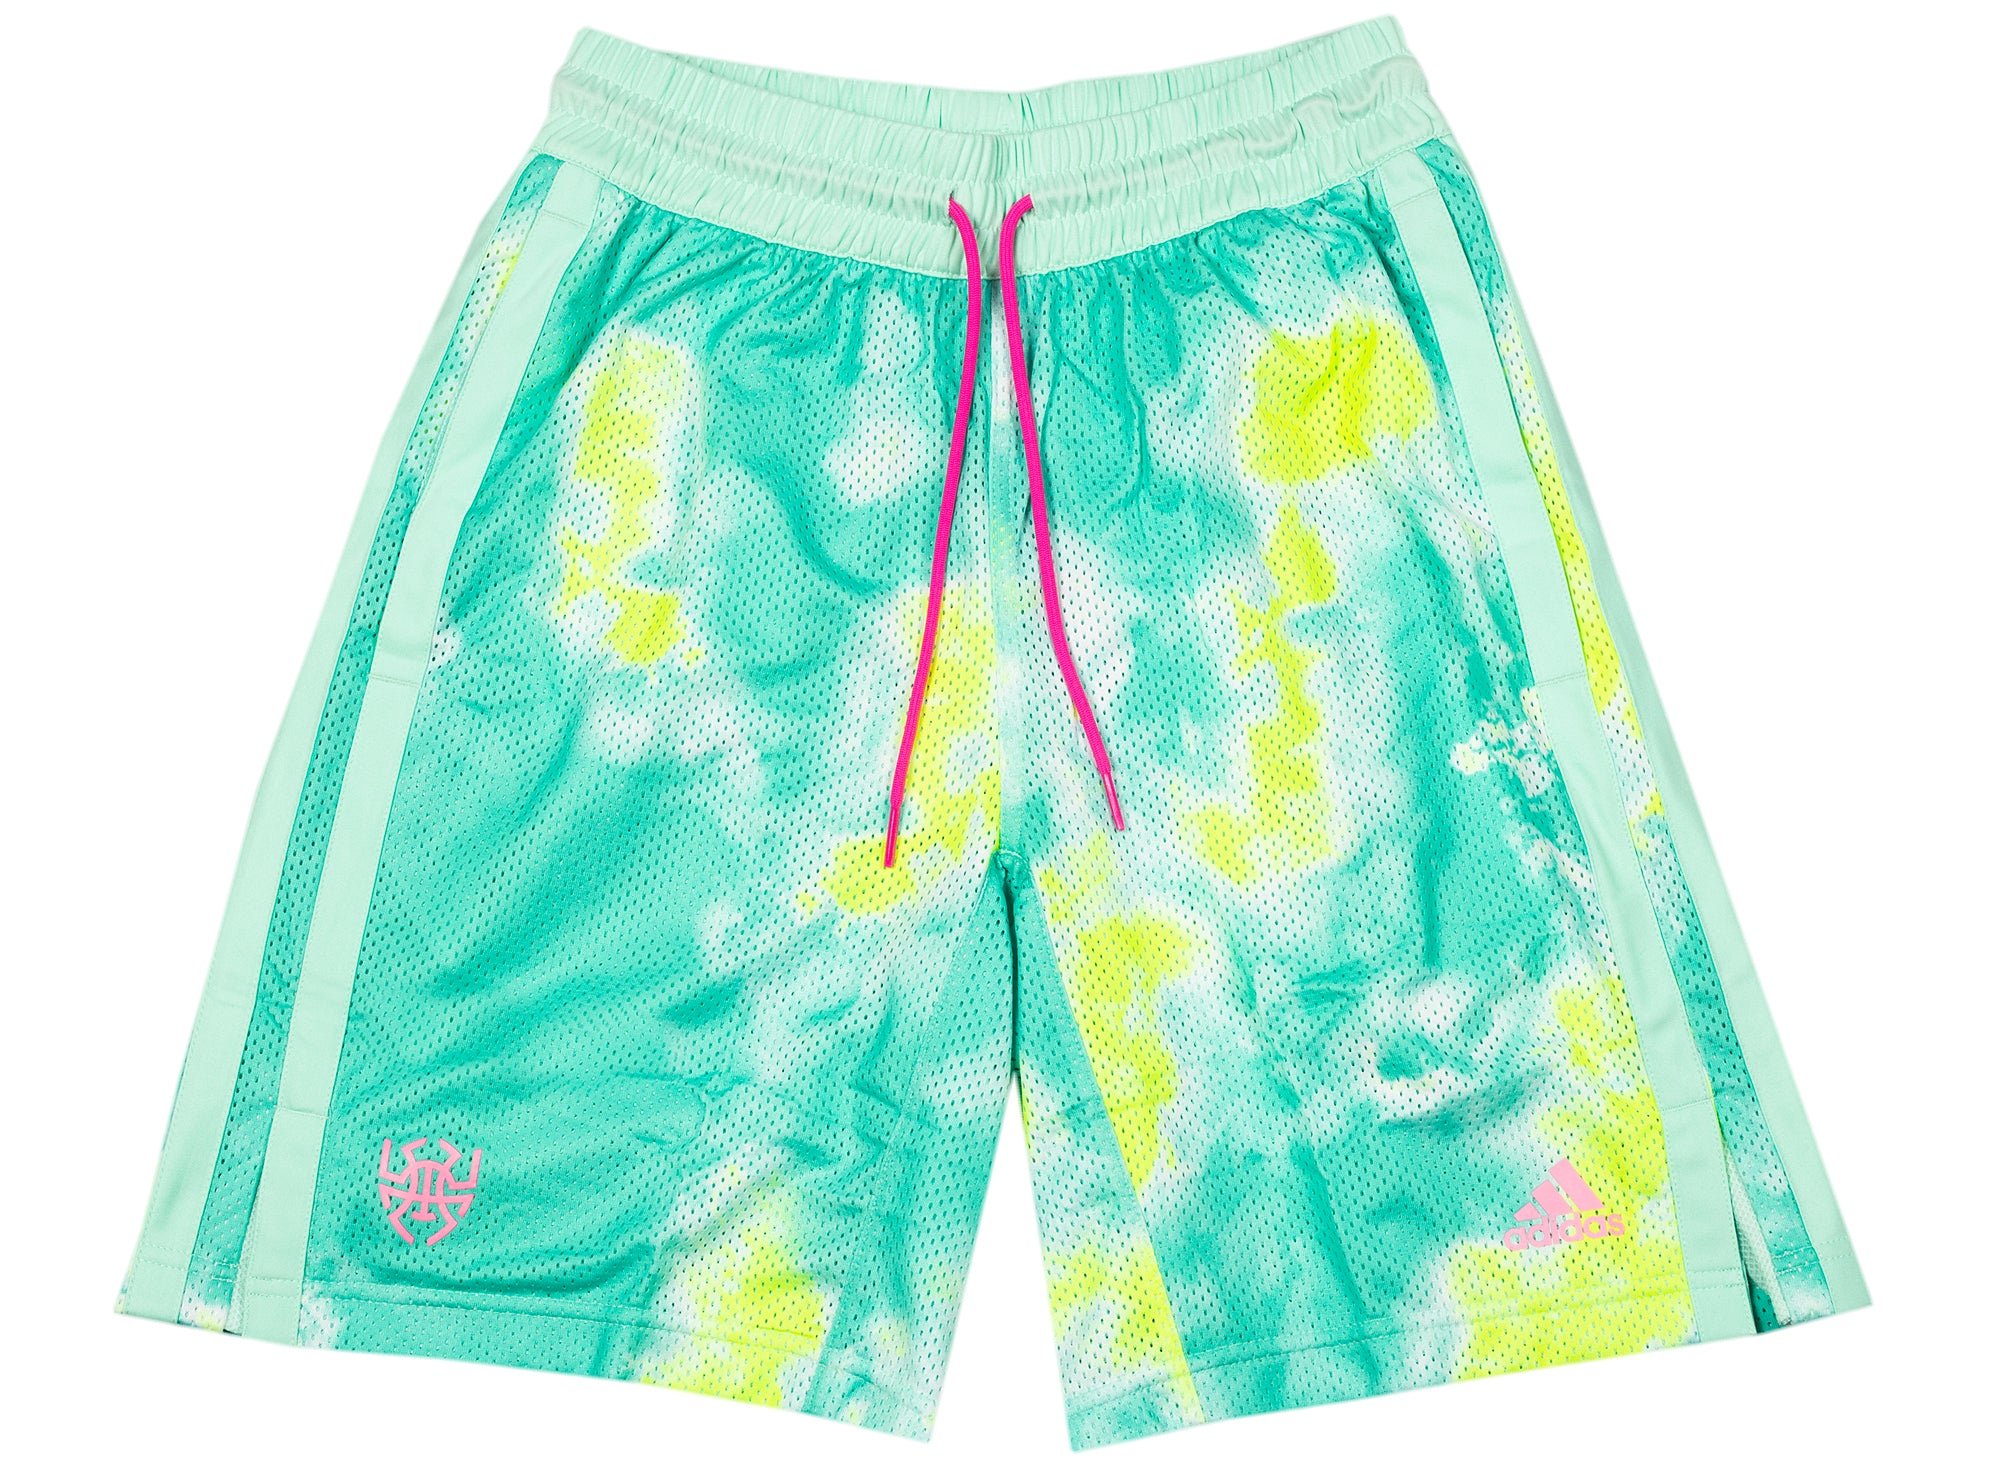 Adidas Donavan Mitchell Shorts in Mint xld